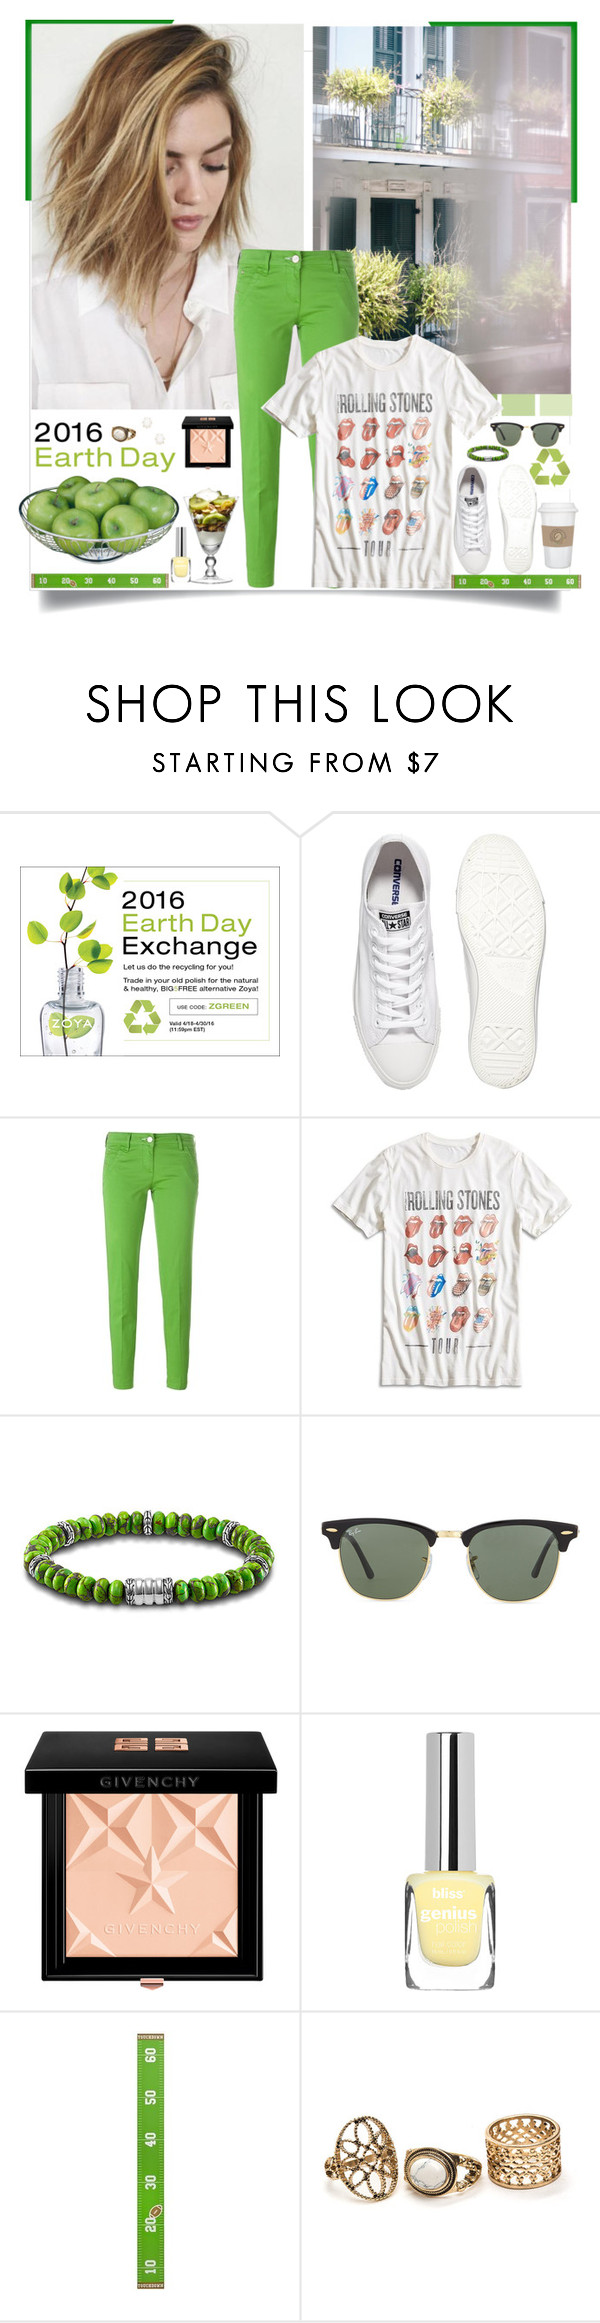 """""""Ecology in mind ^ (17.2)"""" by red-fashion ❤ liked on Polyvore featuring Zoya, Thomsen Paris, Converse, Jacob Cohёn, Lucky Brand, John Hardy, Ray-Ban, Givenchy, Kendra Scott and crazyforfashion"""